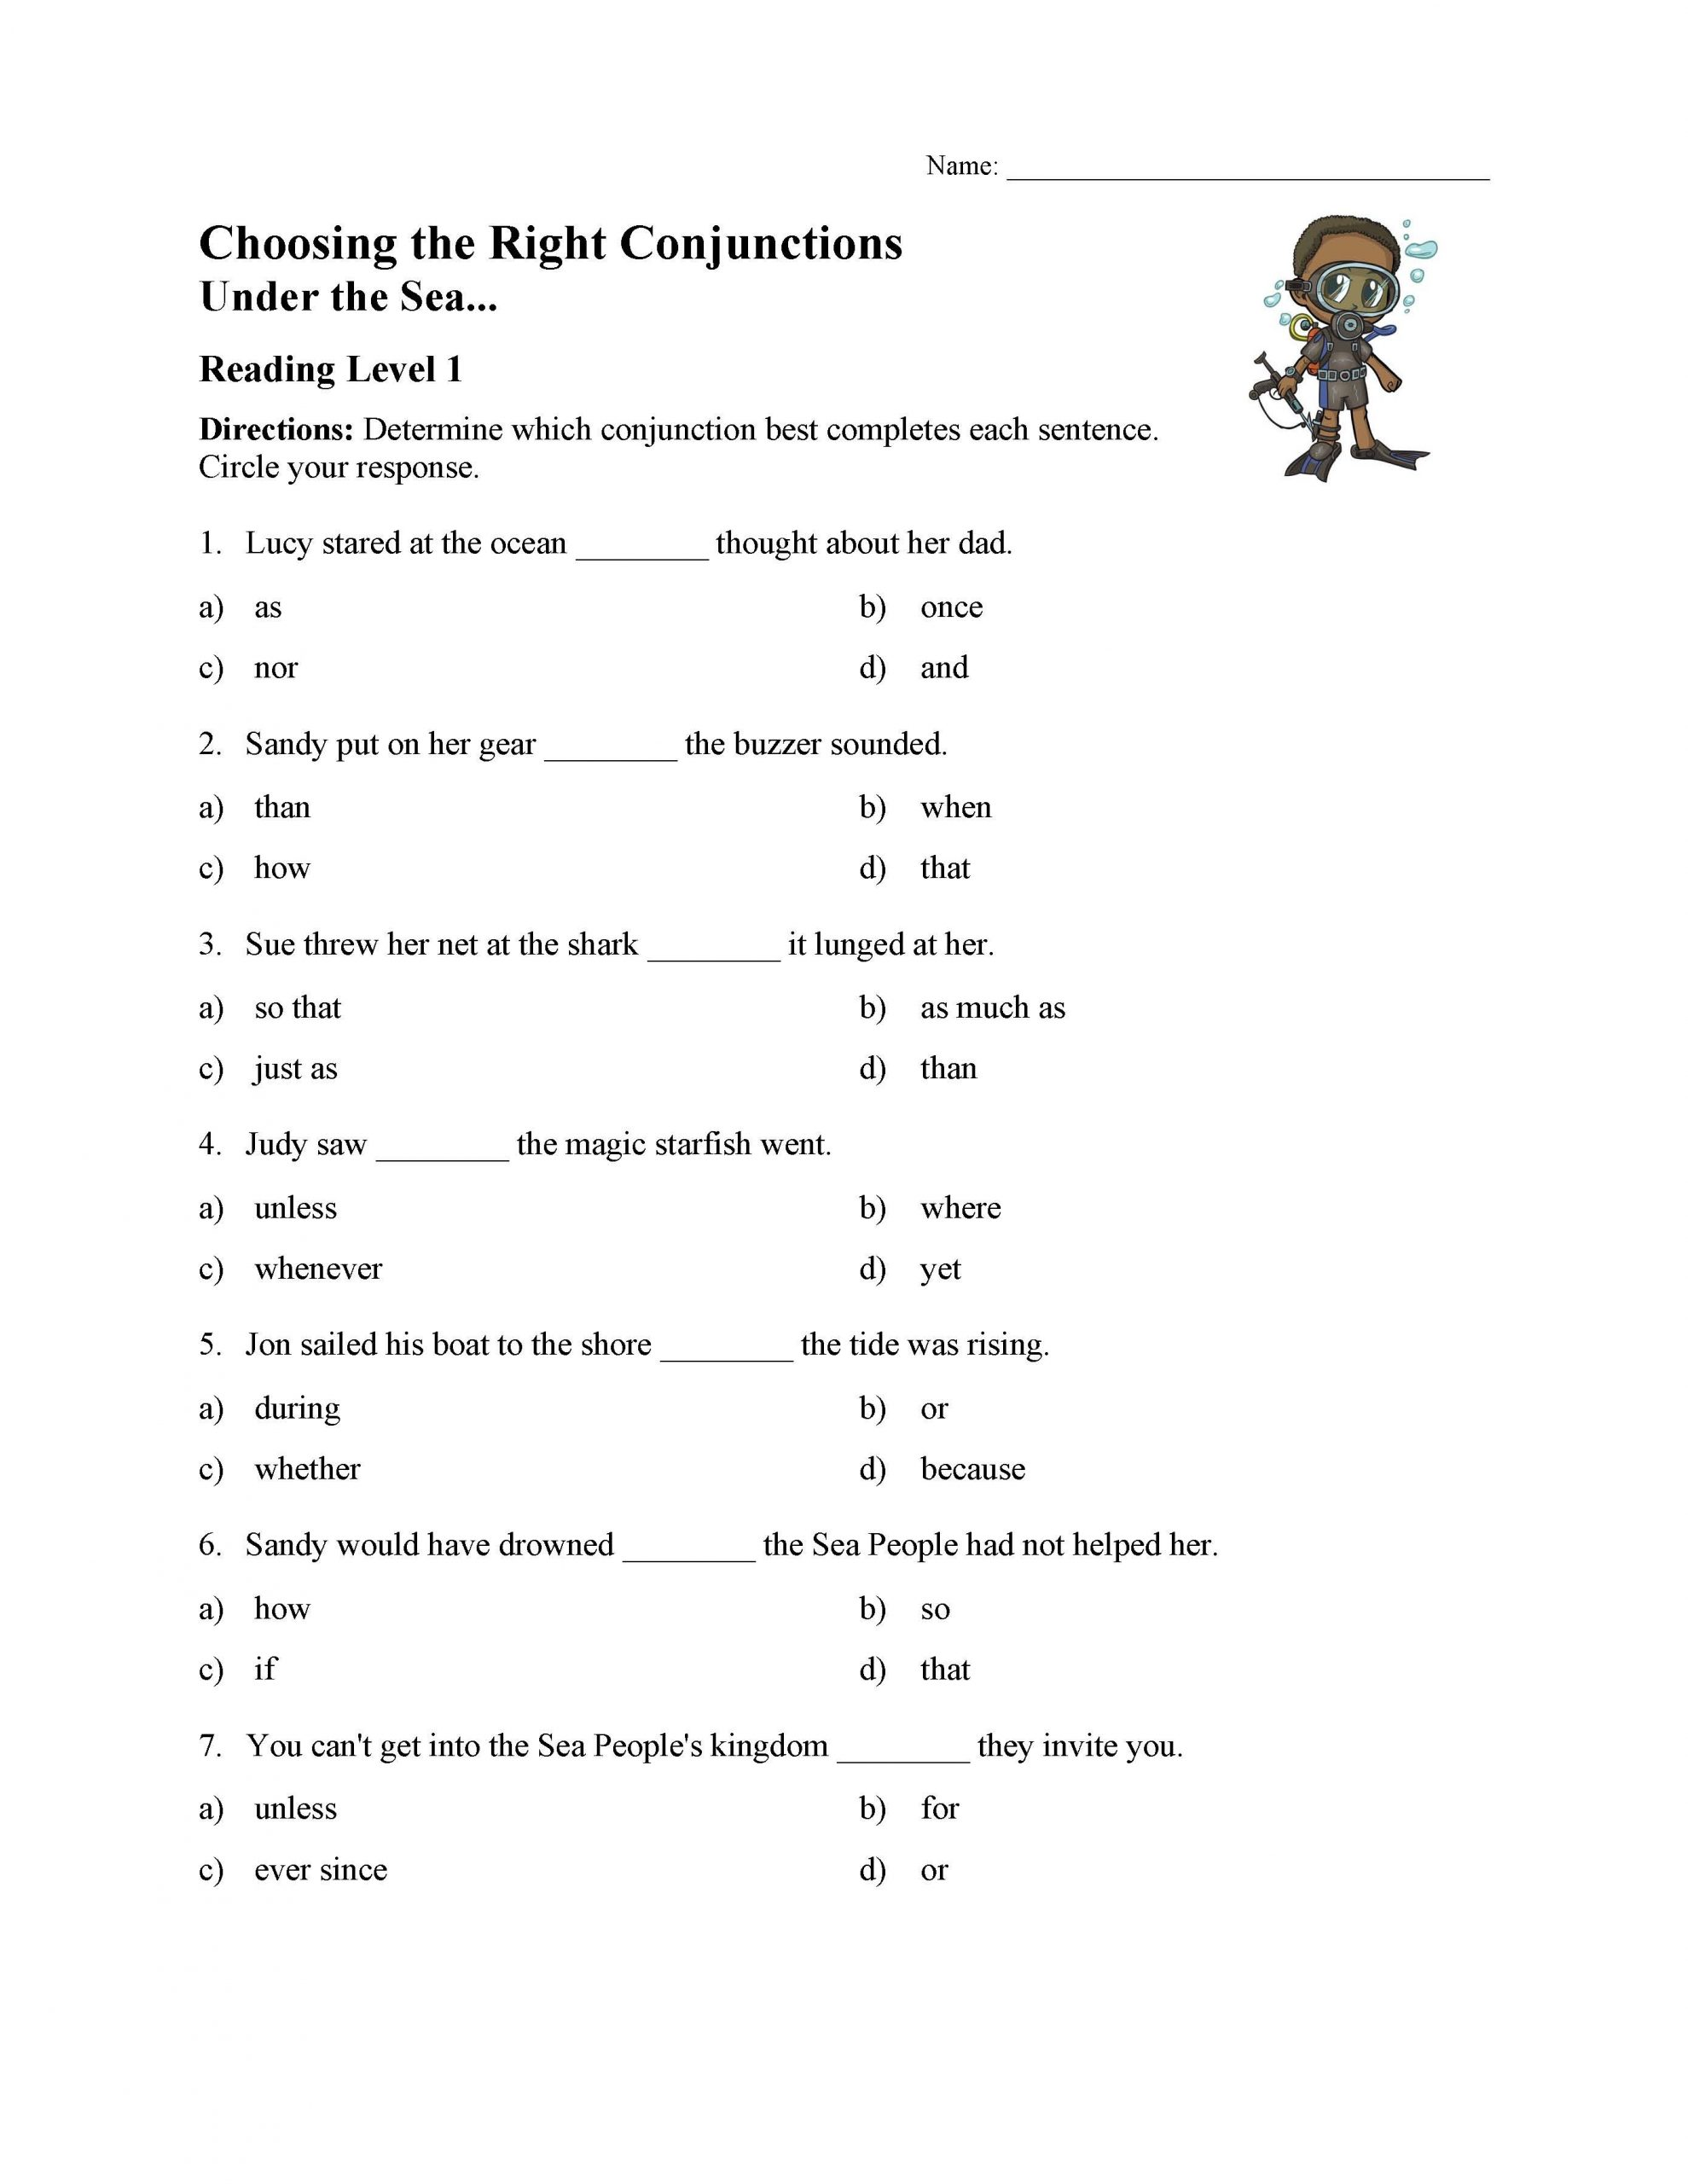 Conjunction Worksheets for Grade 3 Choosing the Right Conjunction Worksheet Reading Level 1